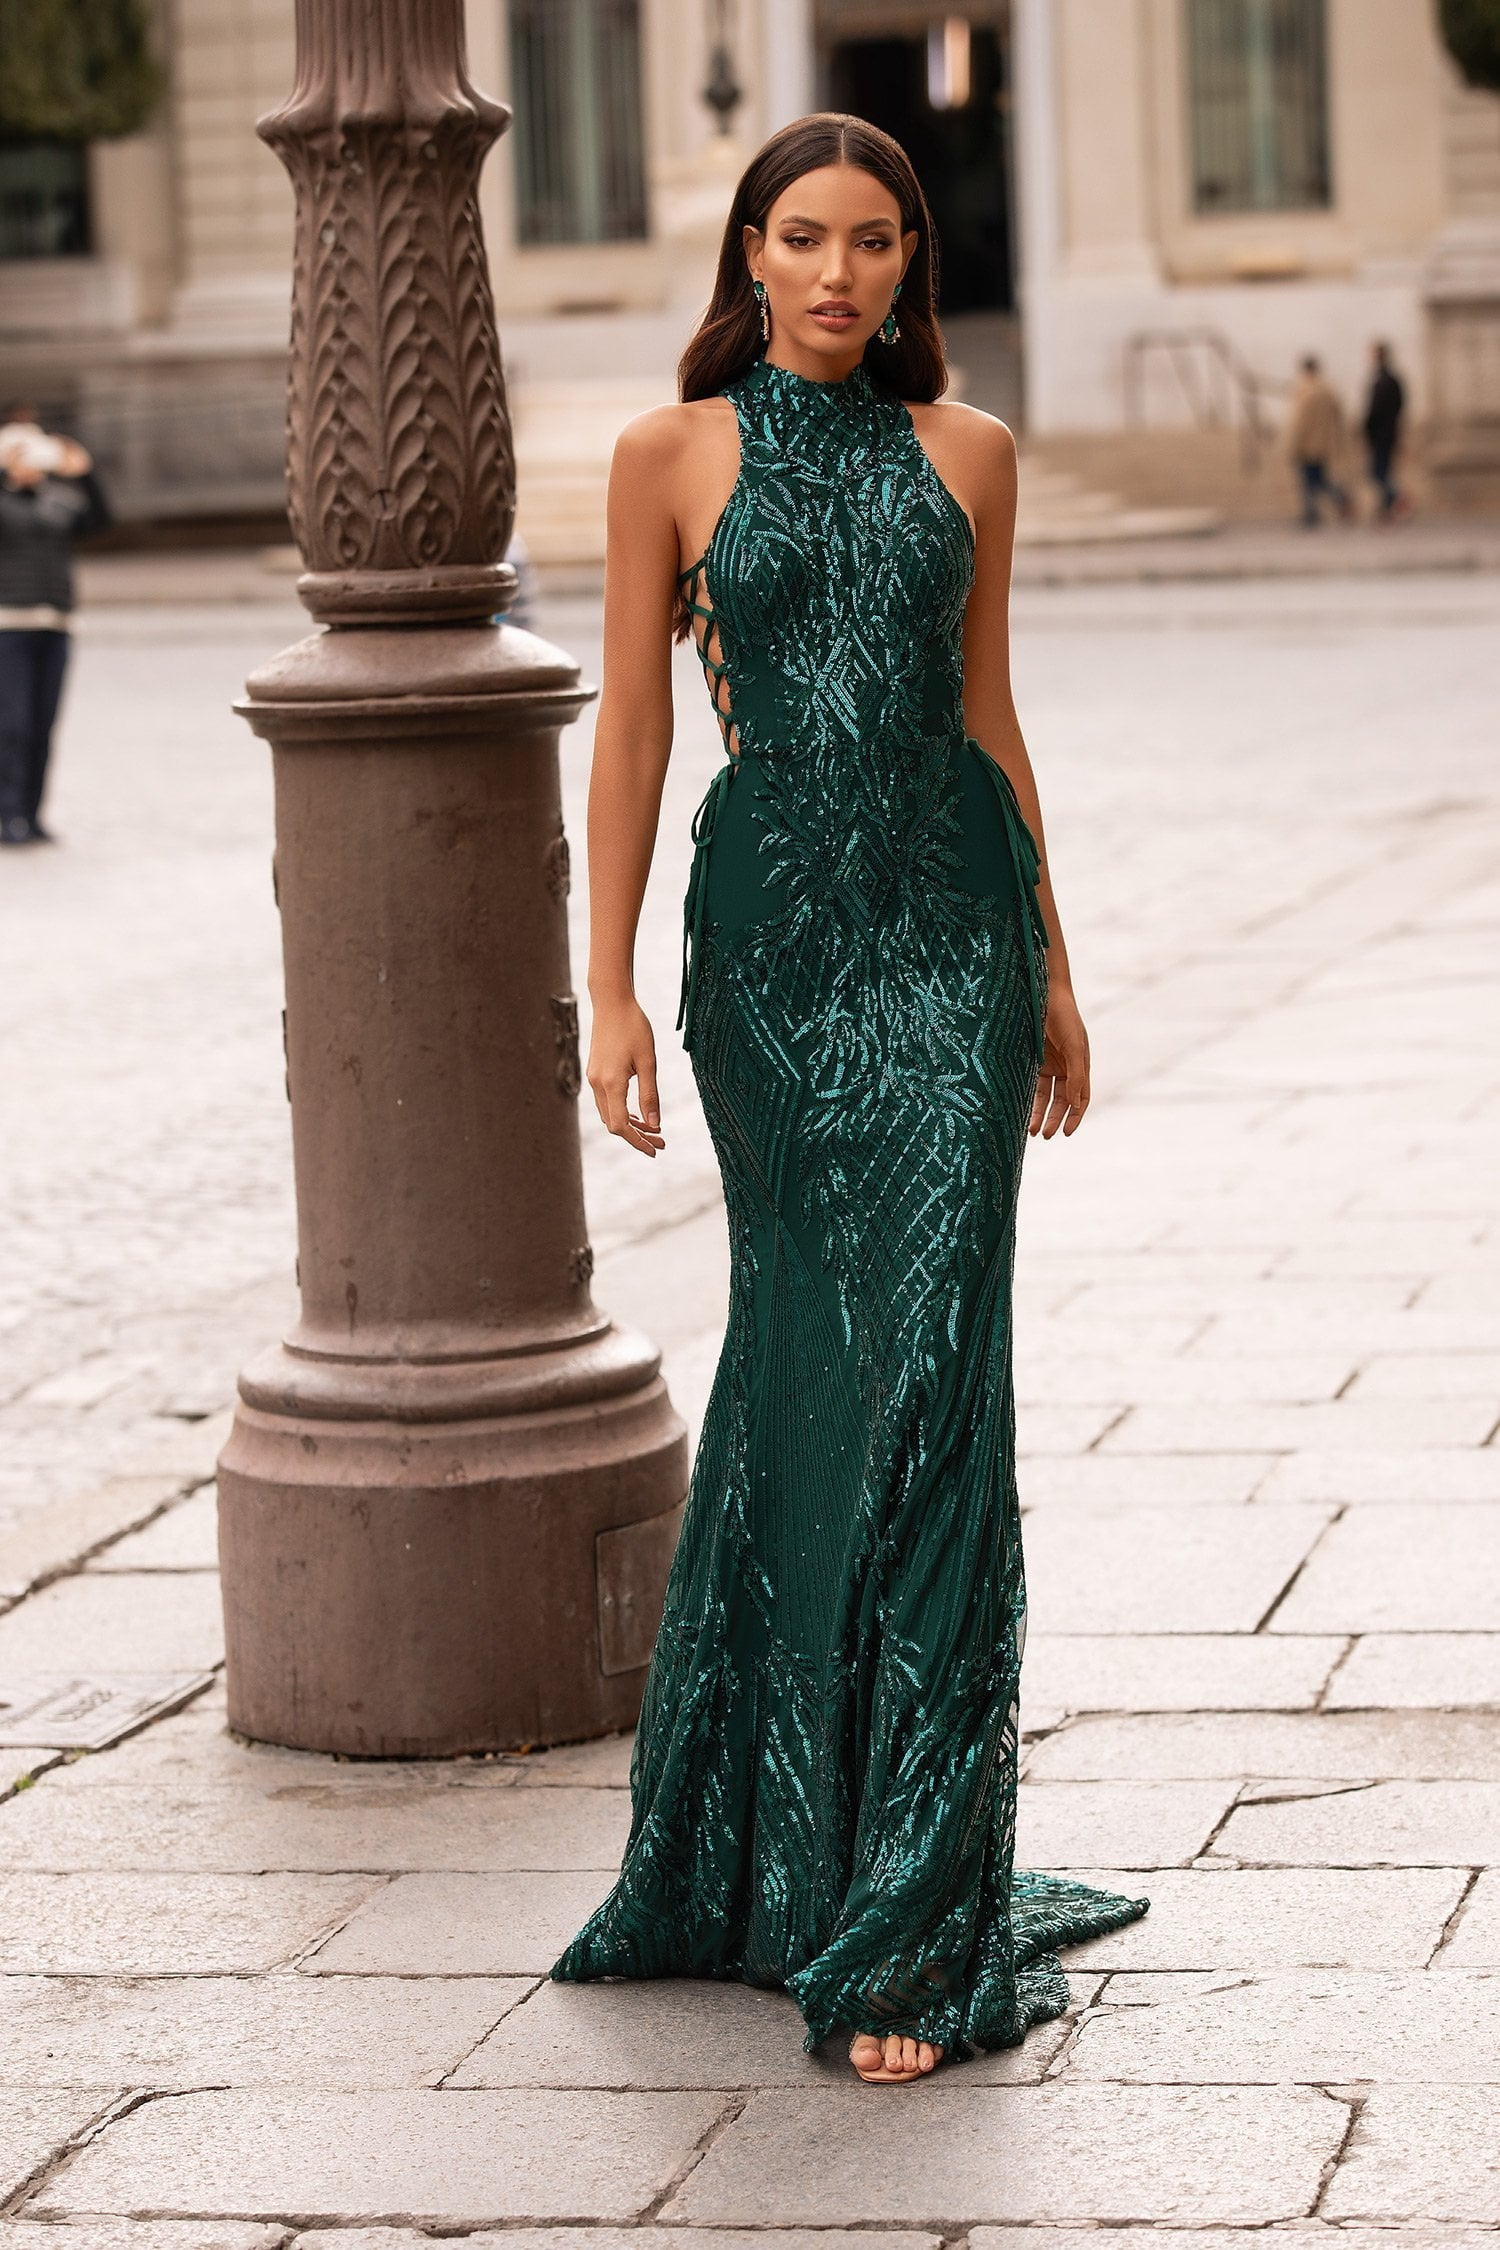 Belinda - Emerald Sequin Gown with High Neckline & Criss Cross Sides